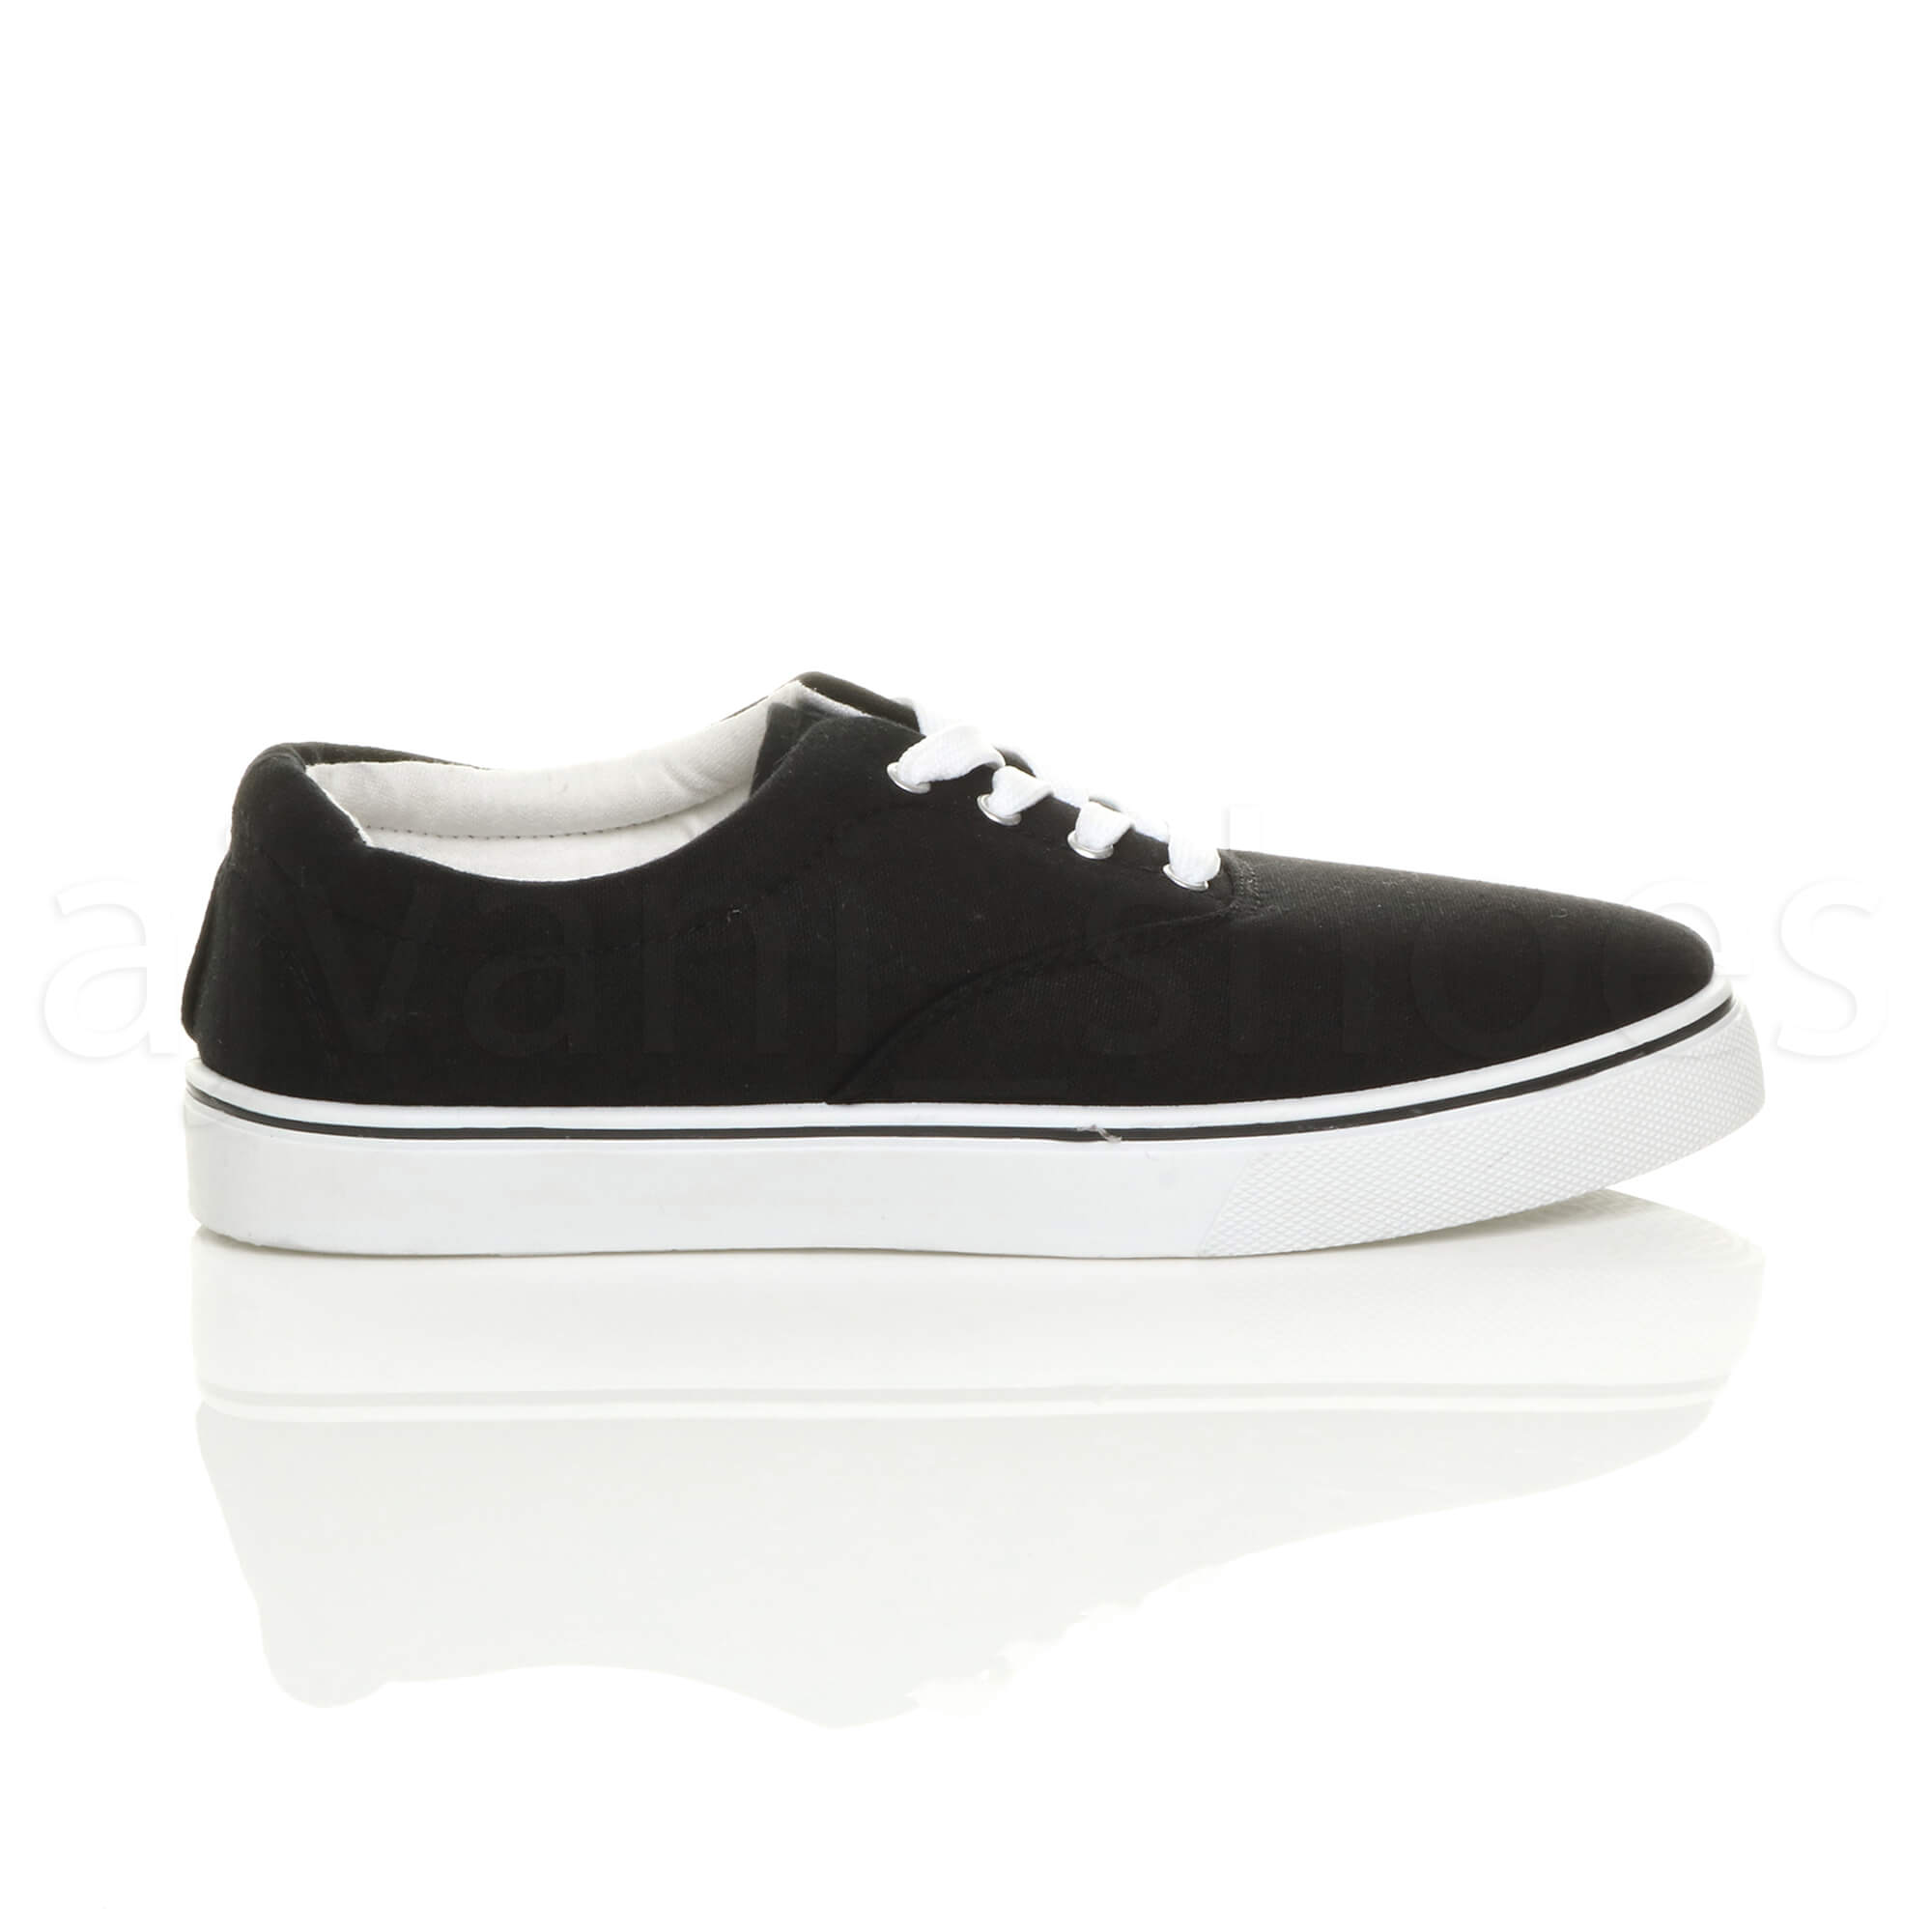 MENS-CANVAS-CASUAL-TRAINERS-PLIMSOLES-PLIMSOLLS-SHOES-LACE-UP-PUMPS-SIZE thumbnail 3